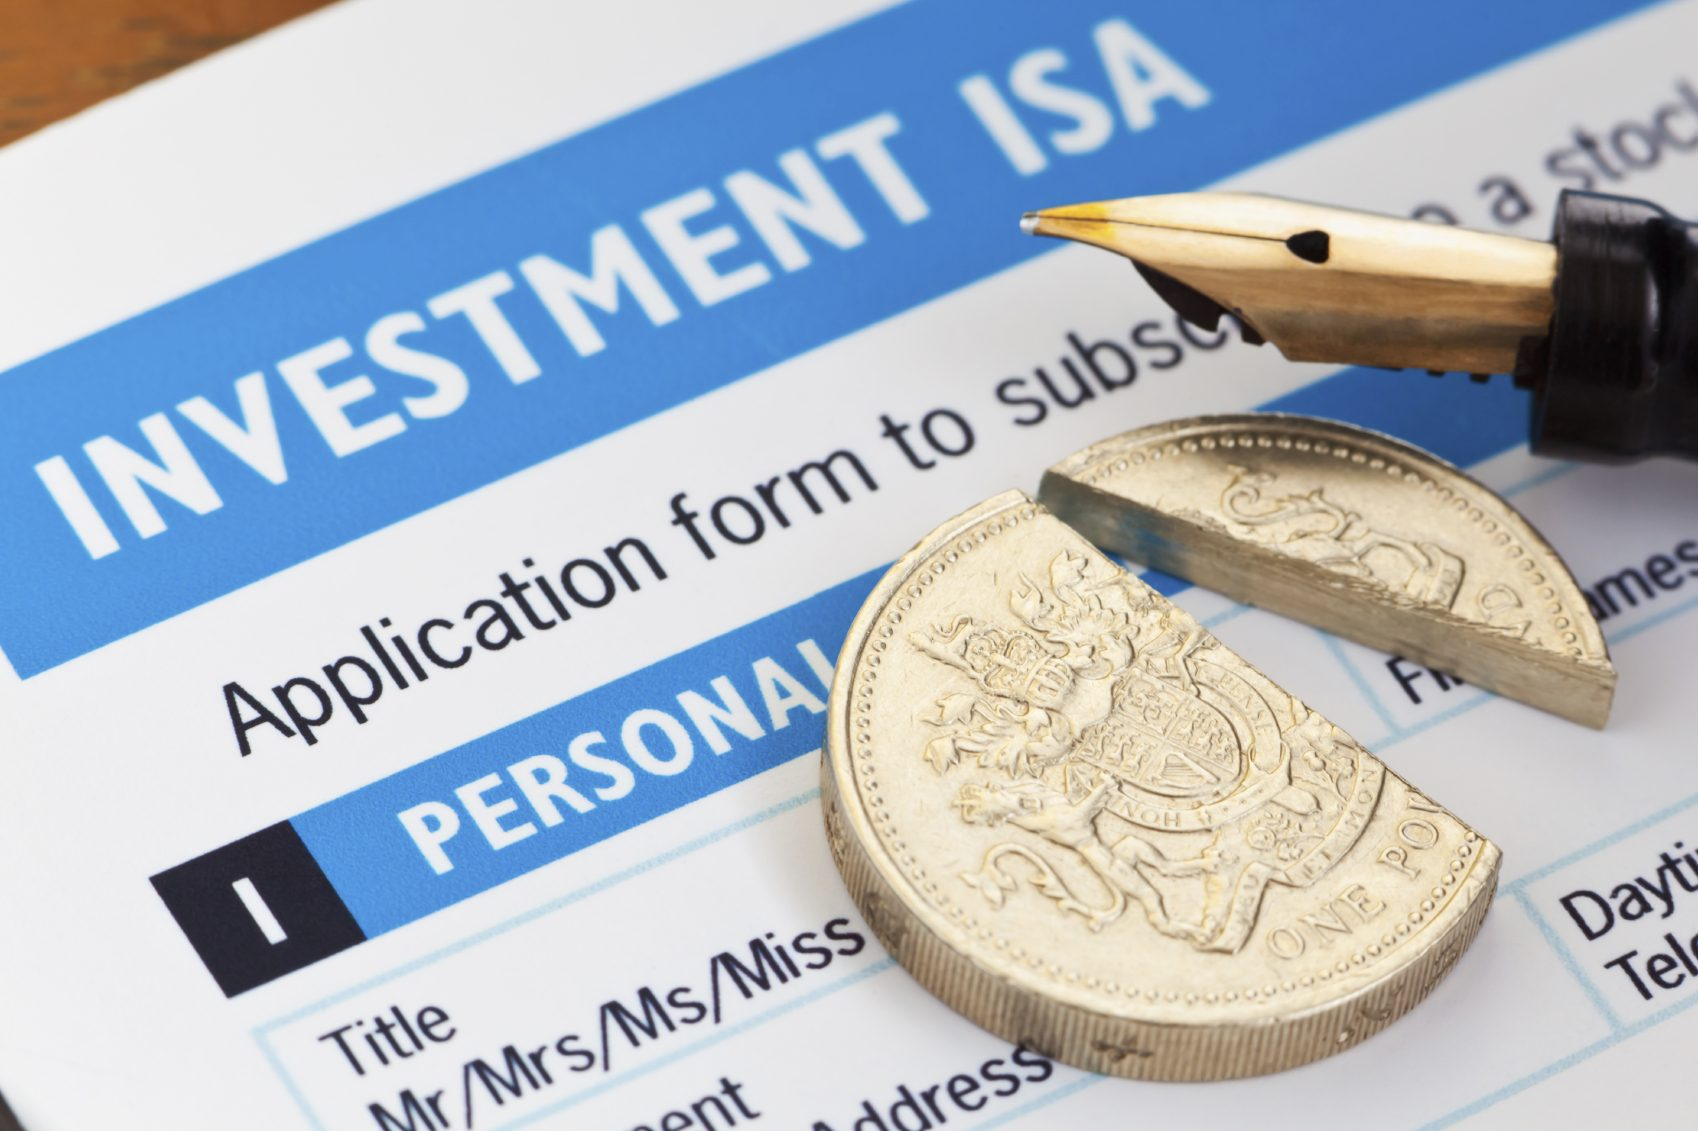 An ISA, or Individual Savings Account is a financial product available to UK tax residents, in which all the investment gains are free of ALL tax. So don't let HM Revenue & Customs, HMRC, reduce the value of your savings by taking a percentage of every pound of value gained. The ISA savings plans are open for a full tax year, at the end of which that plan is closed to further investment, and a new plan can be opened. With instant access, and all proceeds free from taxable gain, ISA's are the most tax efficient savings schemes available to UK residents.